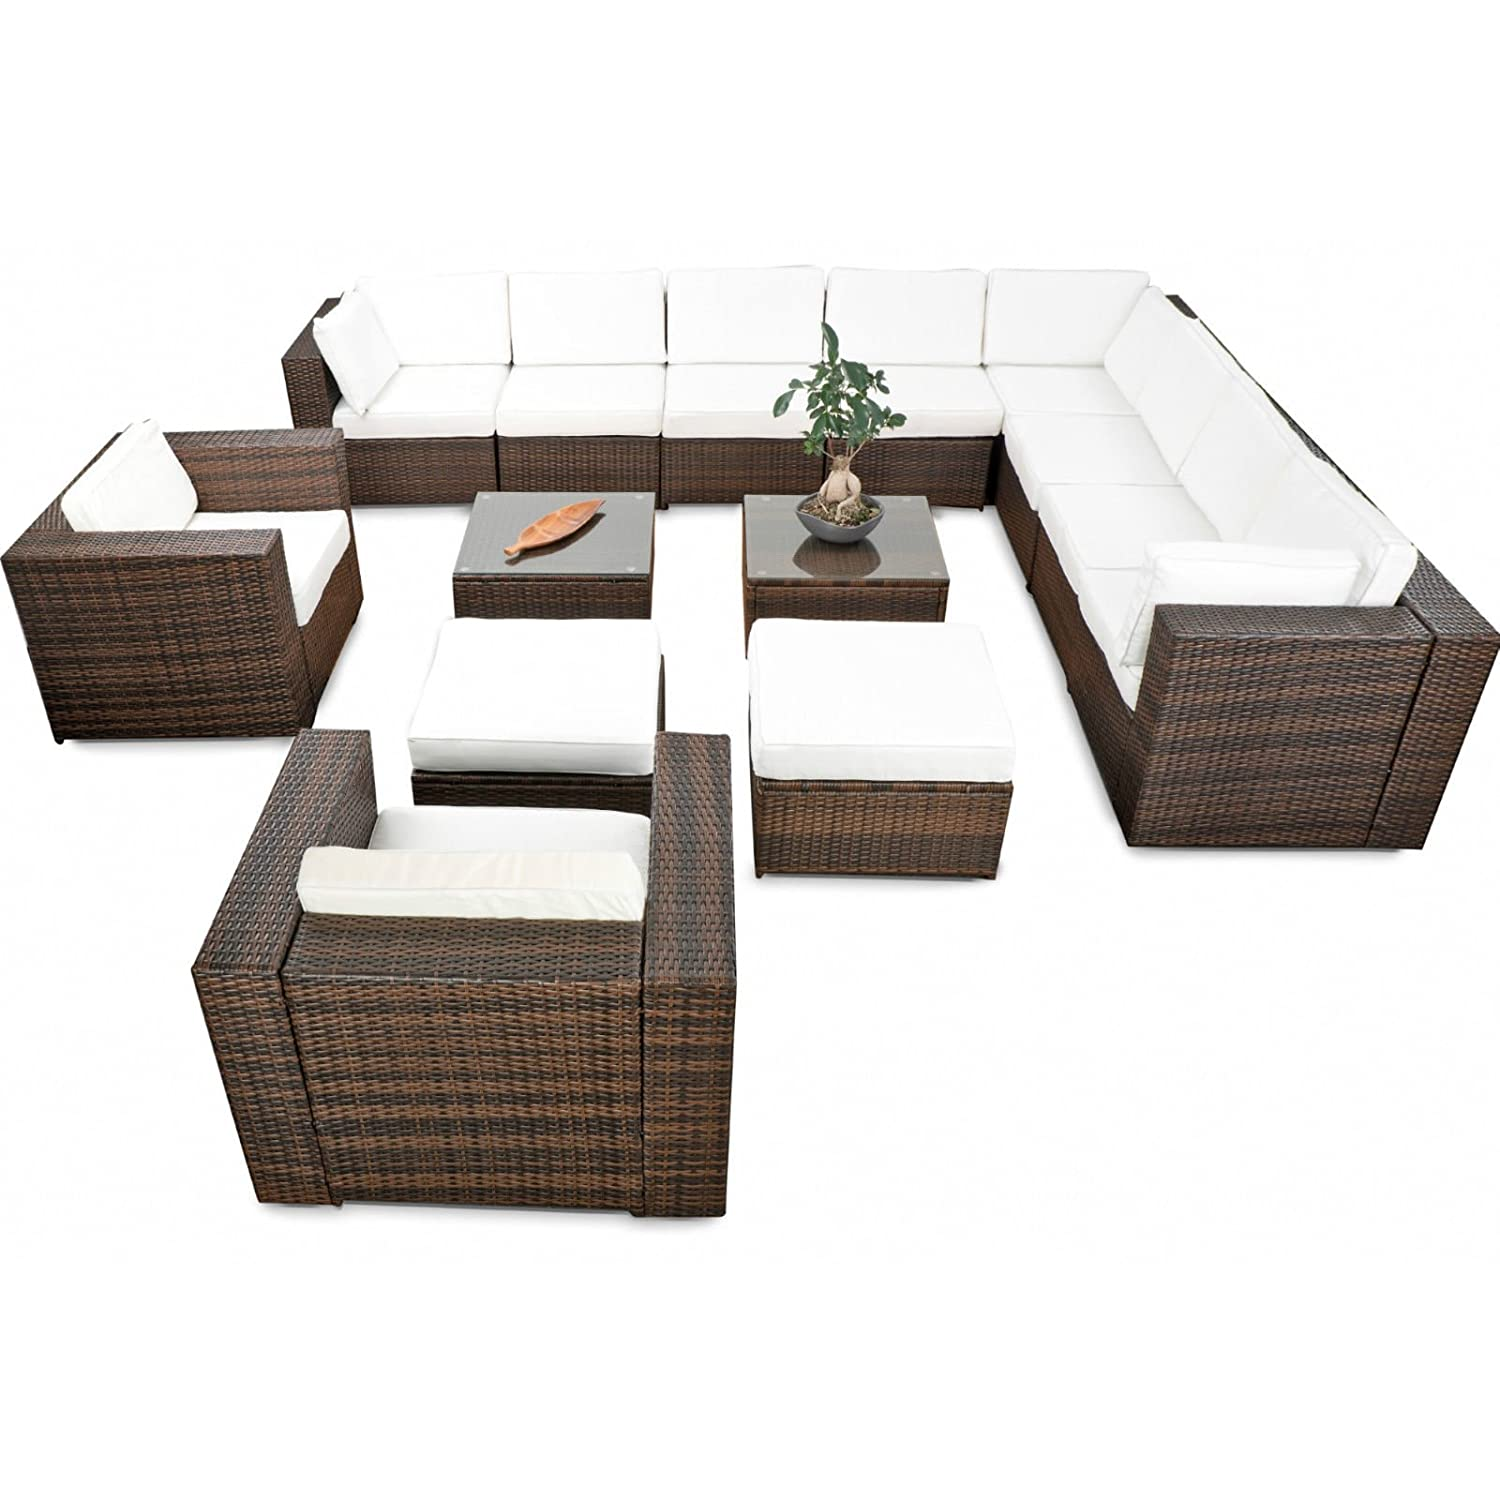 ssitg polyrattan gartenm bel lounge m bel sitzgruppe lounge hocker tisch sessel sofa g nstig kaufen. Black Bedroom Furniture Sets. Home Design Ideas